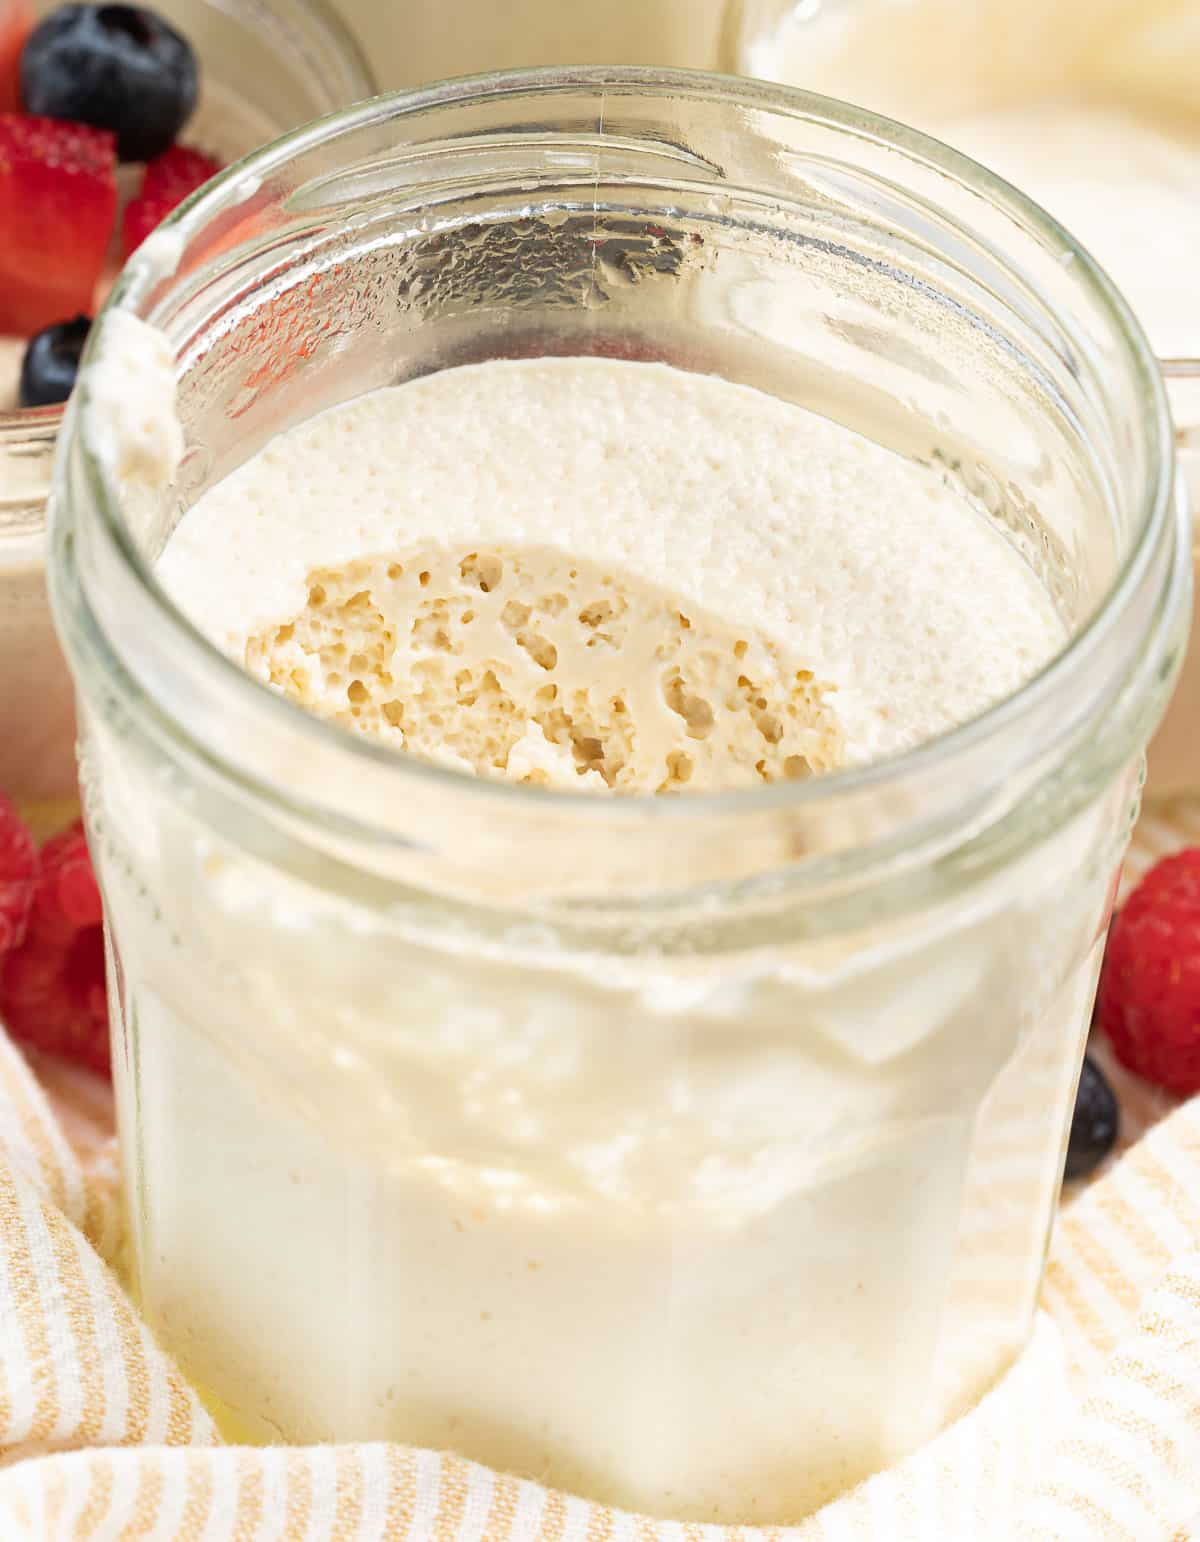 thick vegan yogurt in a jar with a spoon removed showing the bubbly fermented texture